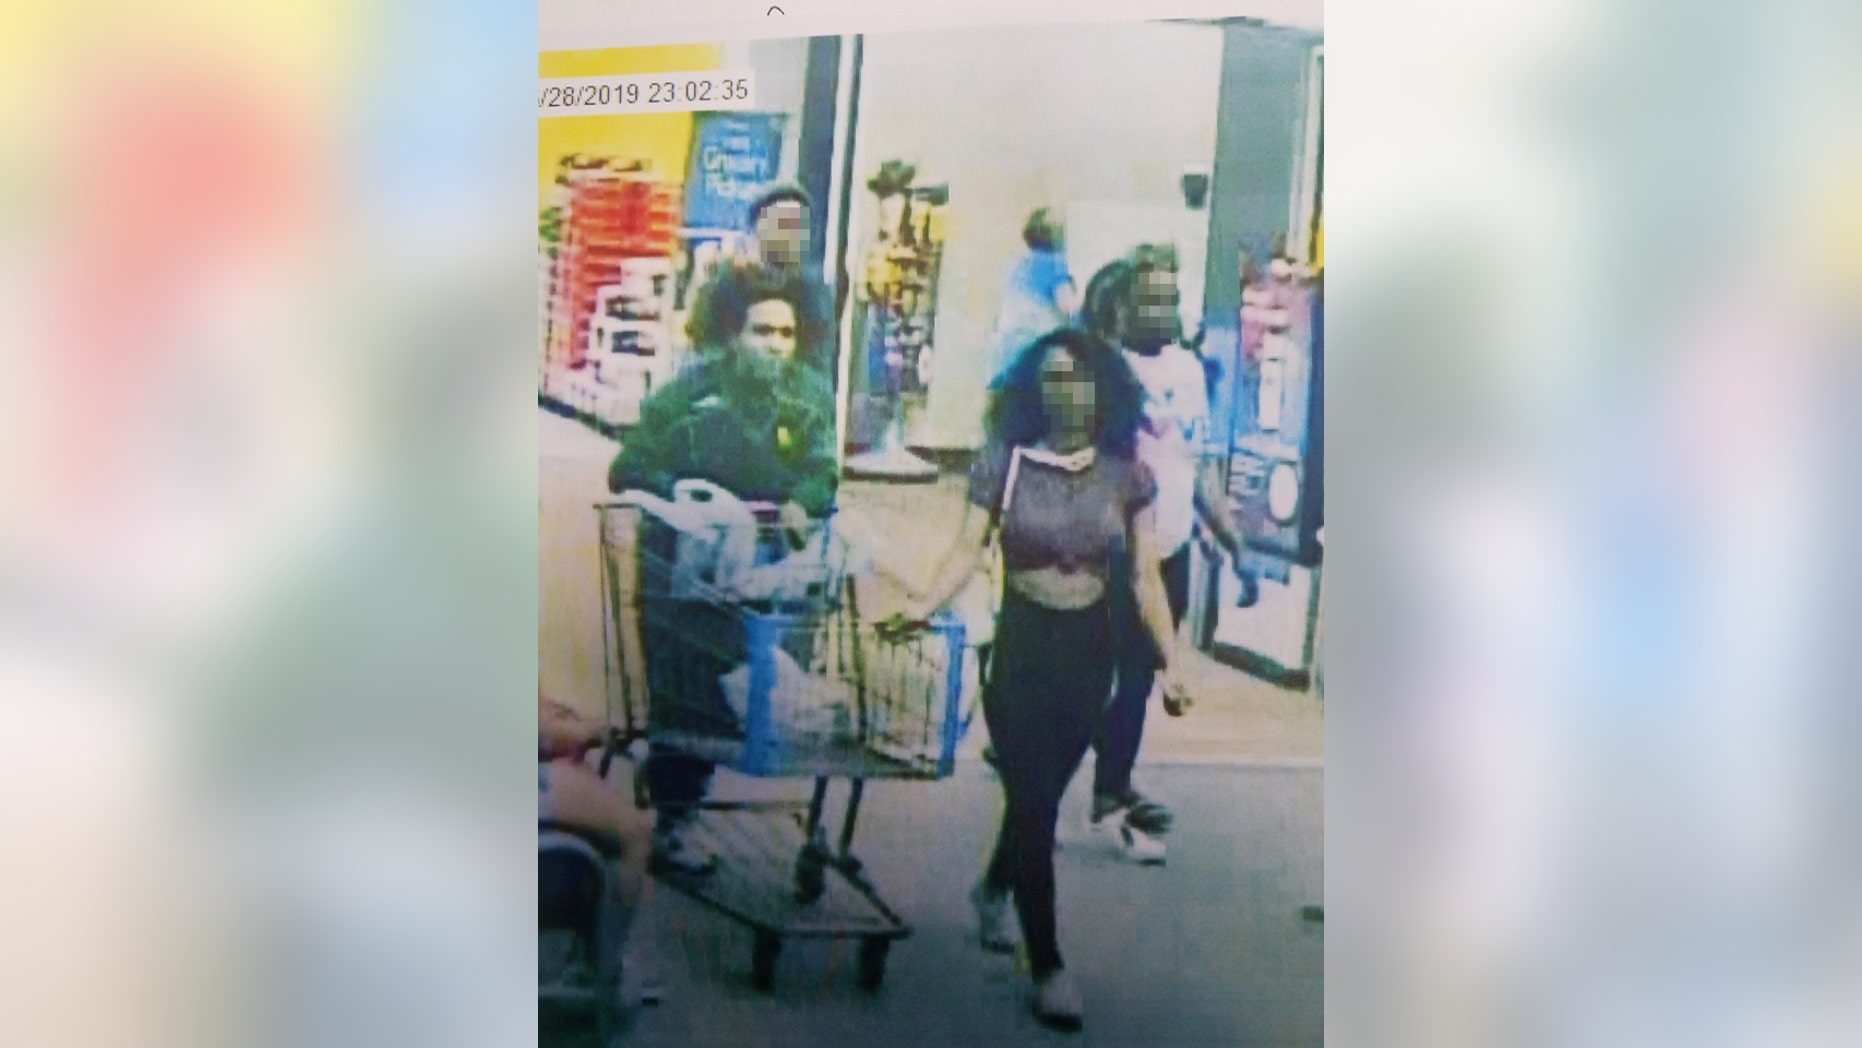 """Still from store video showing the suspected """"Blue Bell Licker"""" and her boyfriend. The girl, a juvenile whose name has not been released, has been identified by Lufkin, Texas police as the person who licked a tub of ice cream in a Walmart store then put it back in the freezer. """